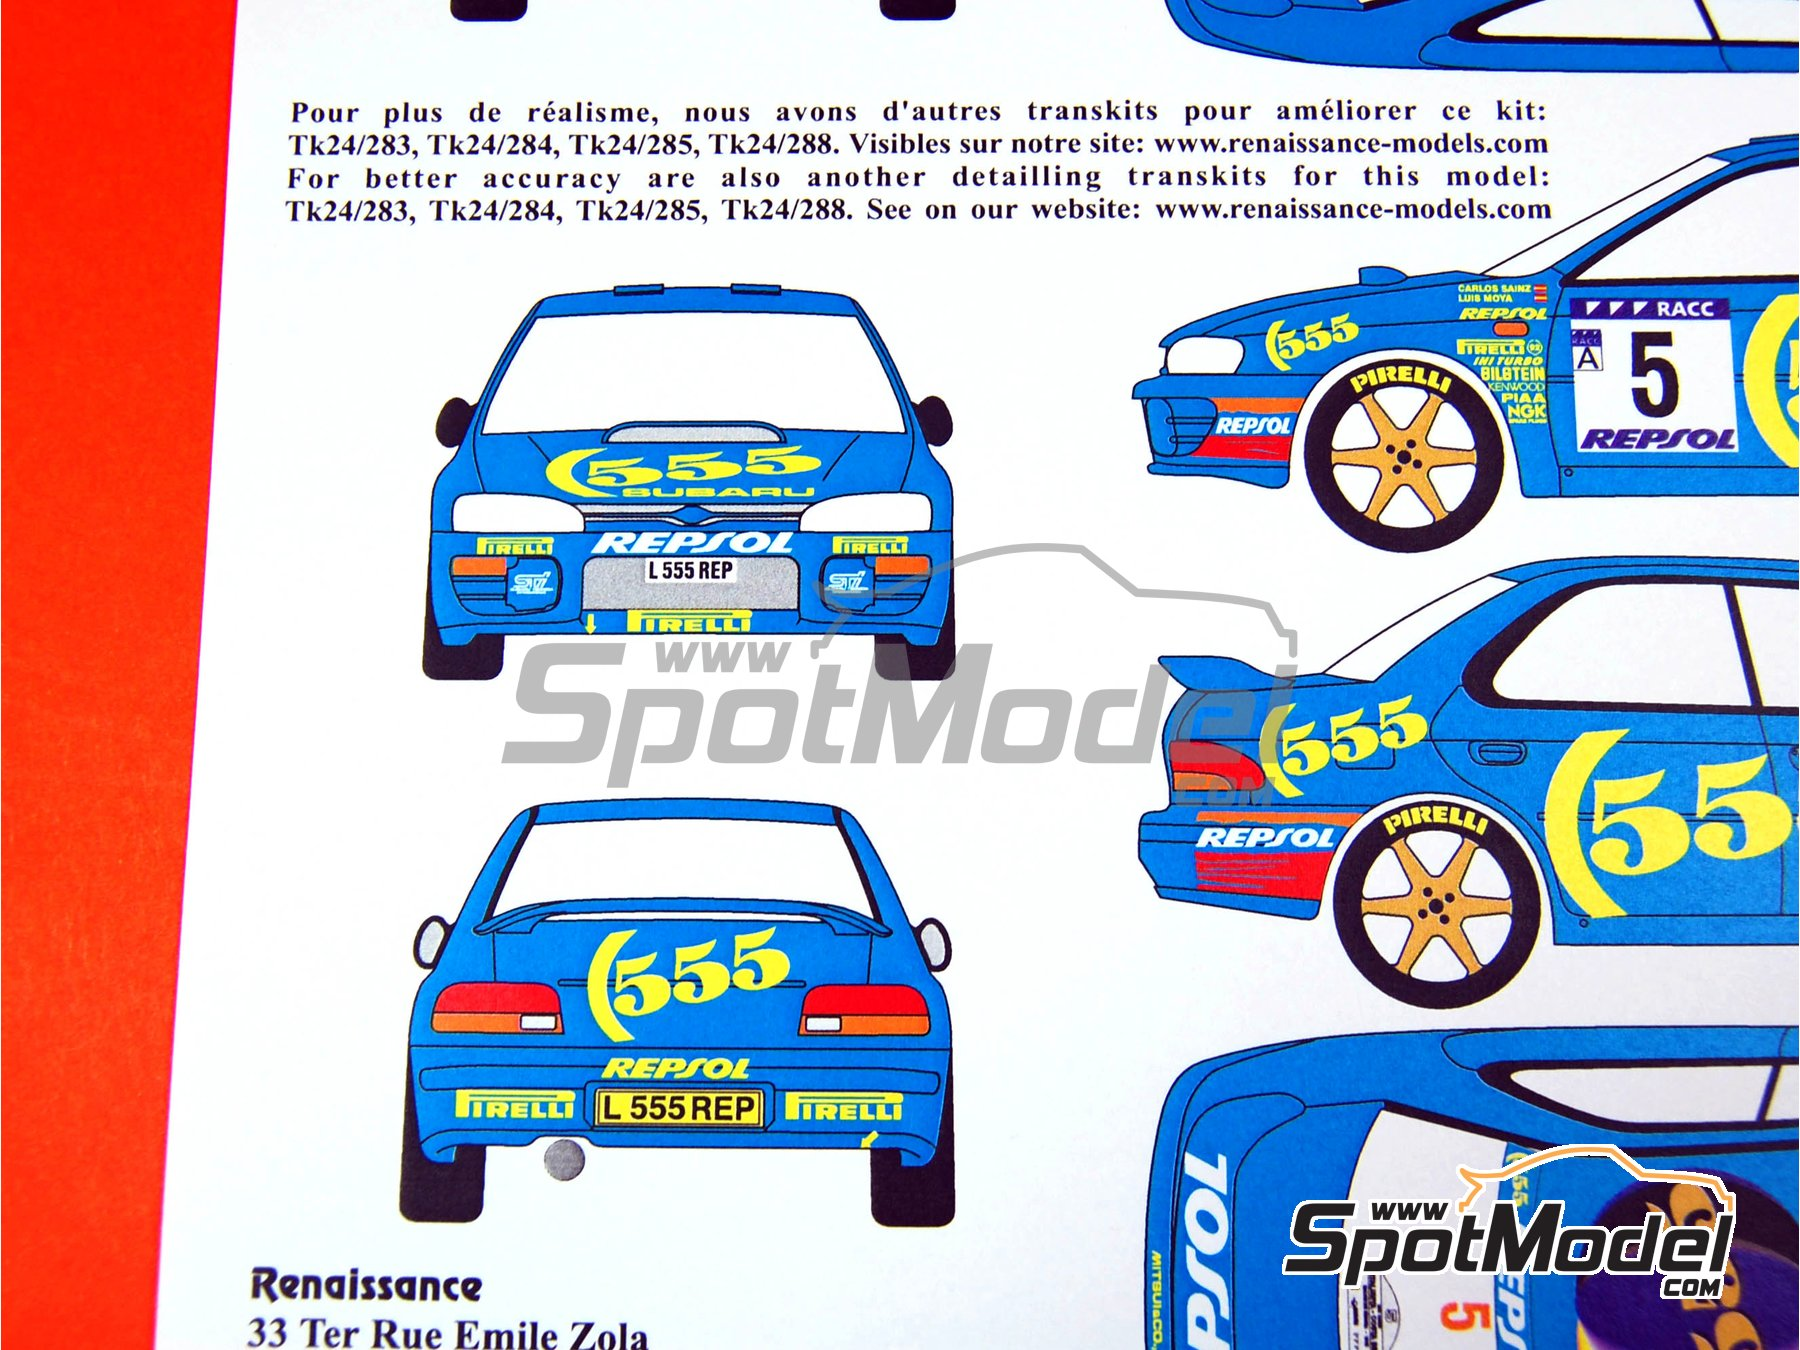 Image 5: Subaru Impreza 555 Group A Repsol - Catalunya Costa Dorada RACC Rally, Great Britain RAC Rally 1995 | Marking / livery in 1/24 scale manufactured by Renaissance Models (ref. TK24-289)